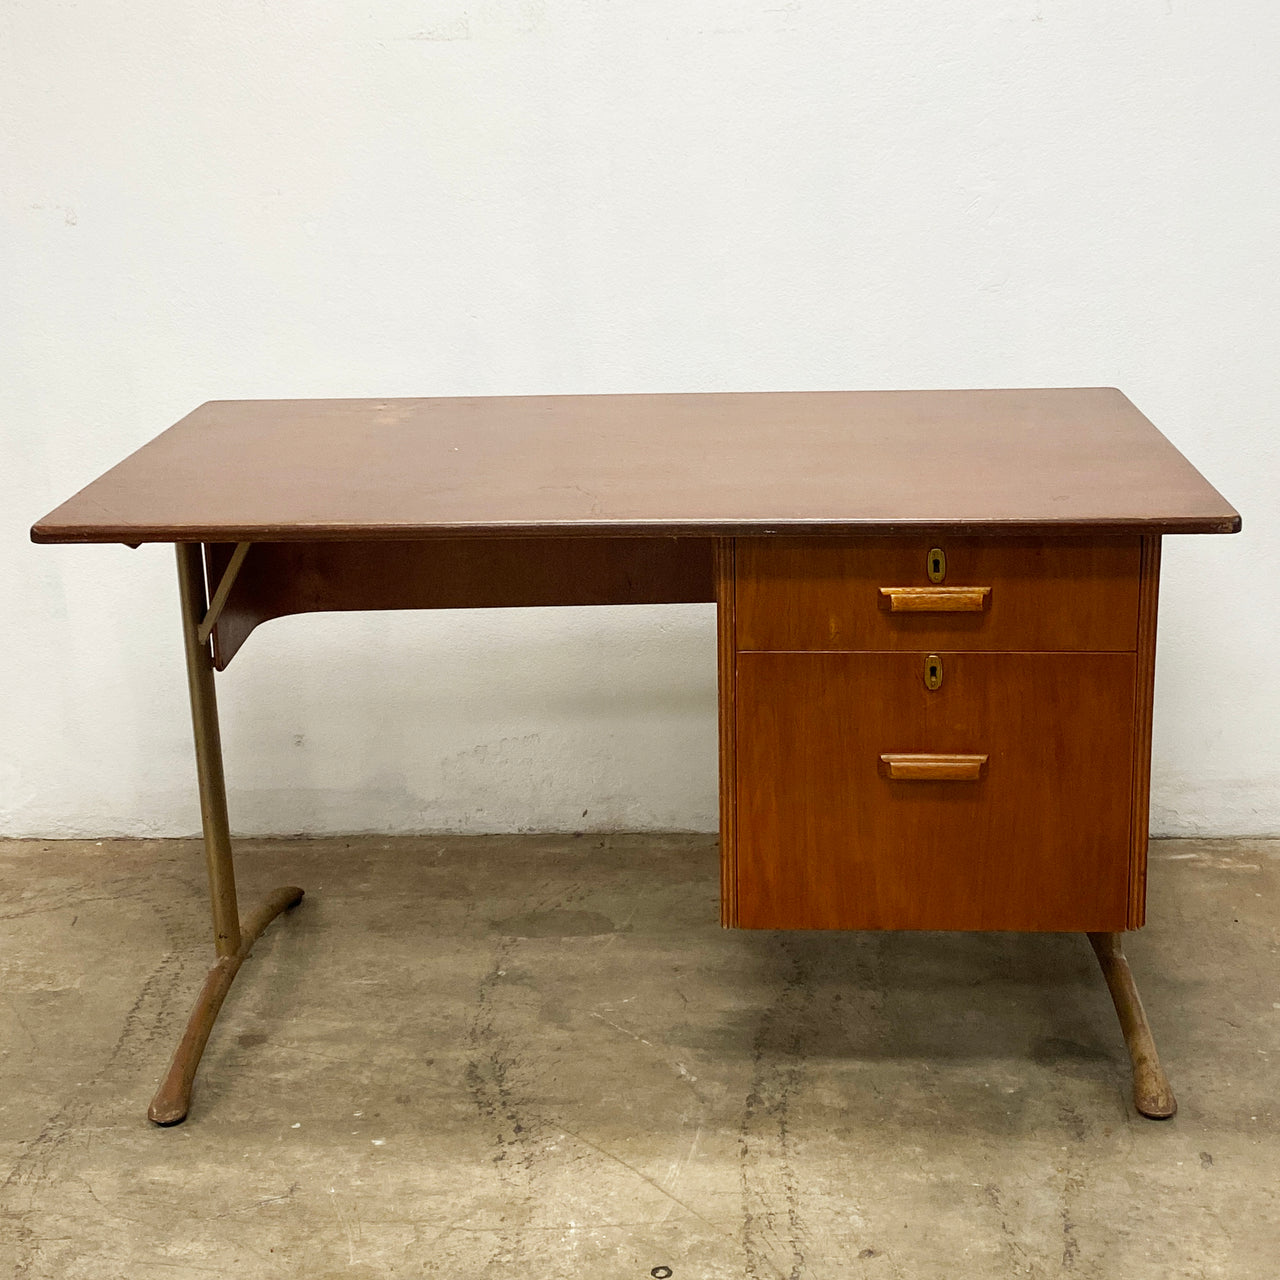 Industrial Retro 1960's 2 Drawer Metal and Wood Desk